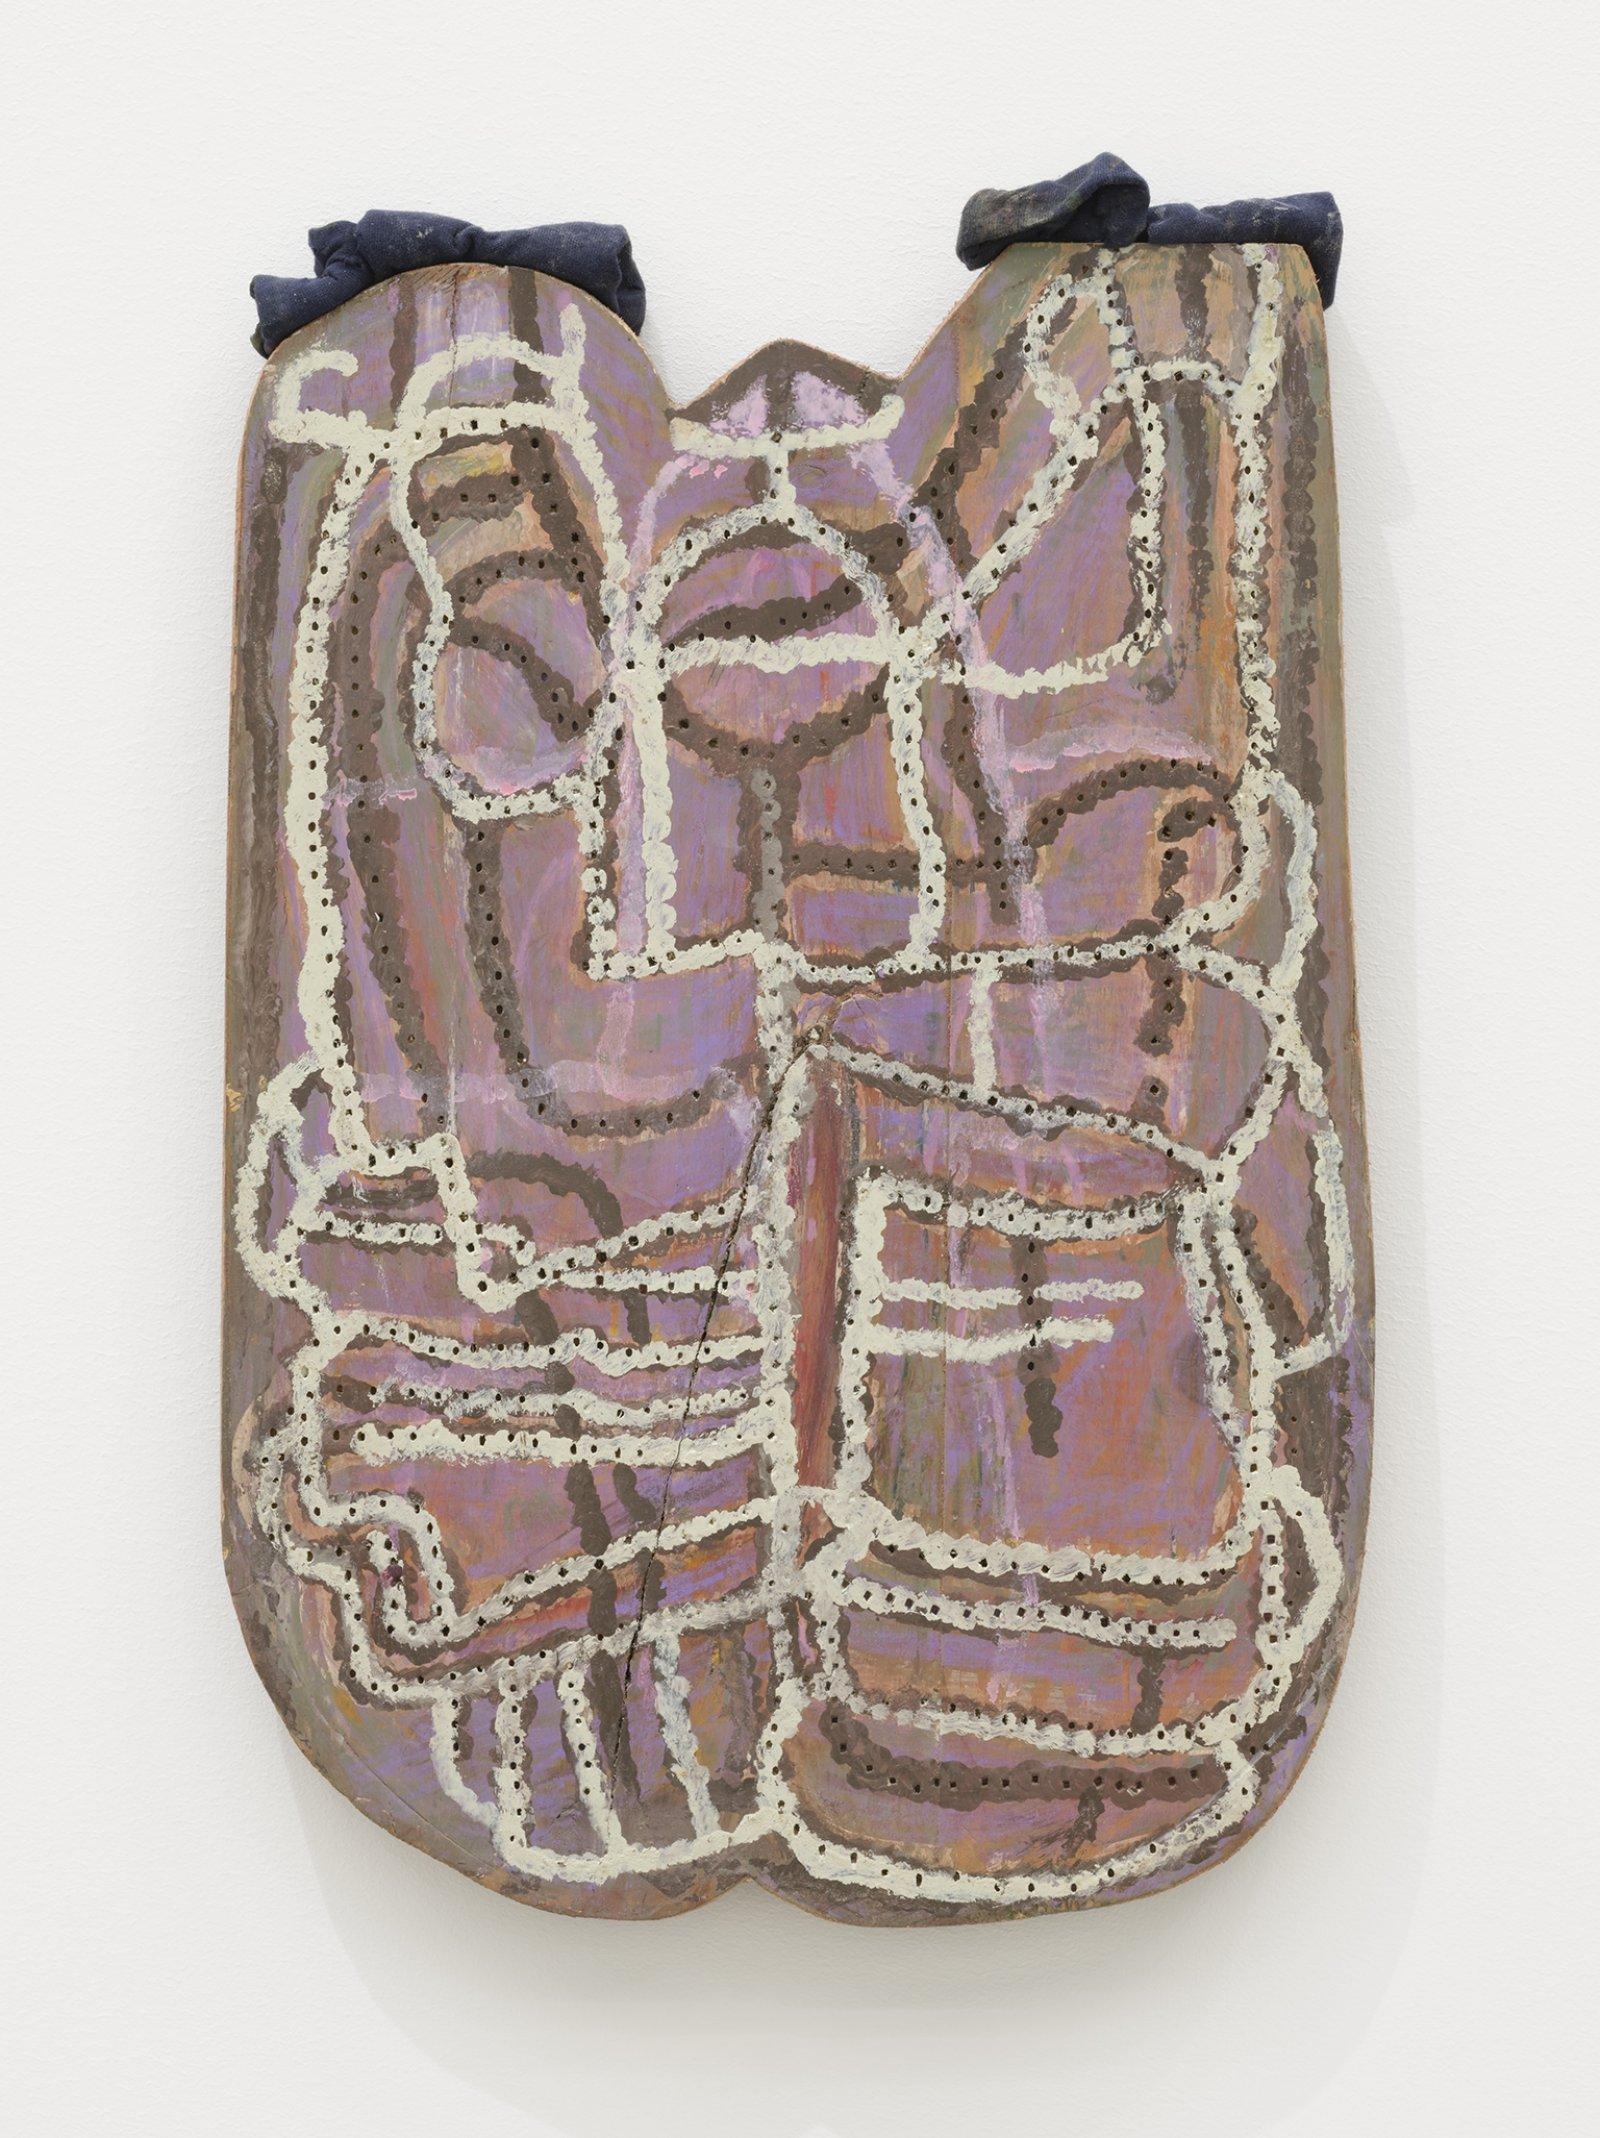 Ashes Withyman, Breath marionette, 2019, found wood, previously frozen paint, coloured pencil, fabric, nails, 17 x 11 in. (42 x 28 cm) by Ashes Withyman